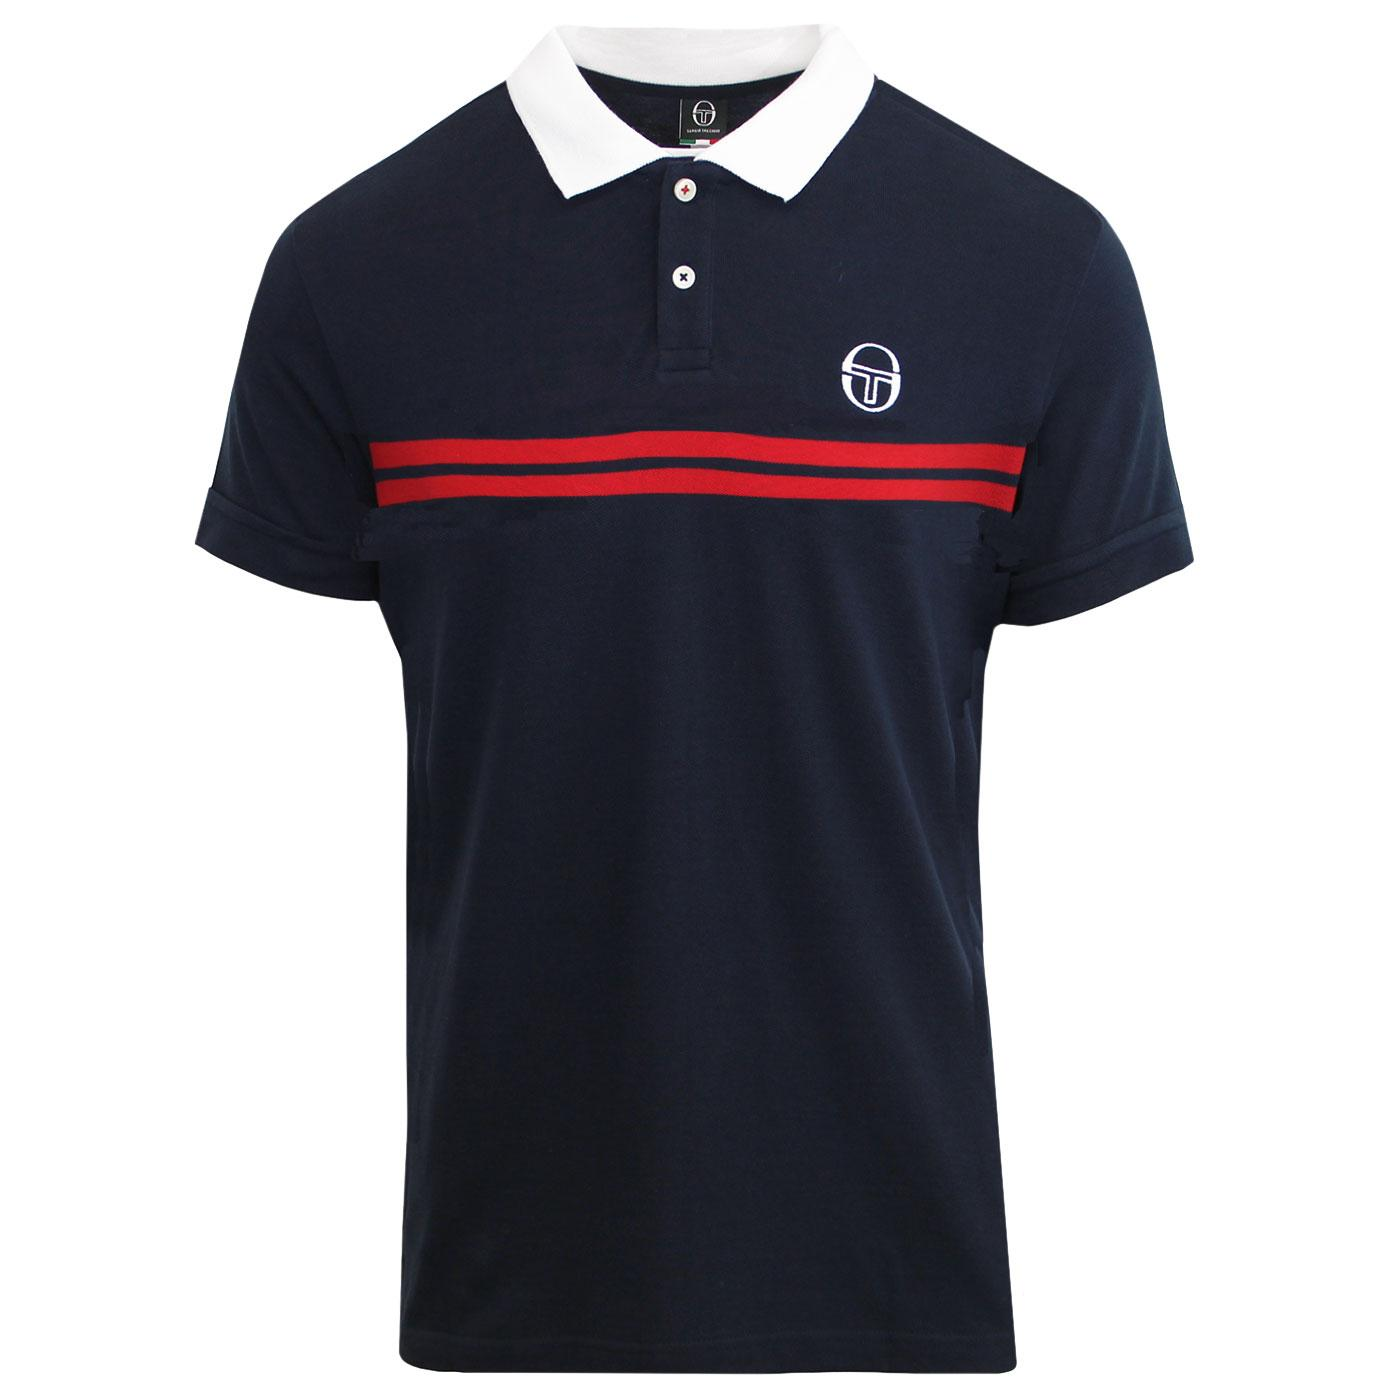 Supermac SERGIO TACCHINI Retro 80s Polo Shirt NAVY